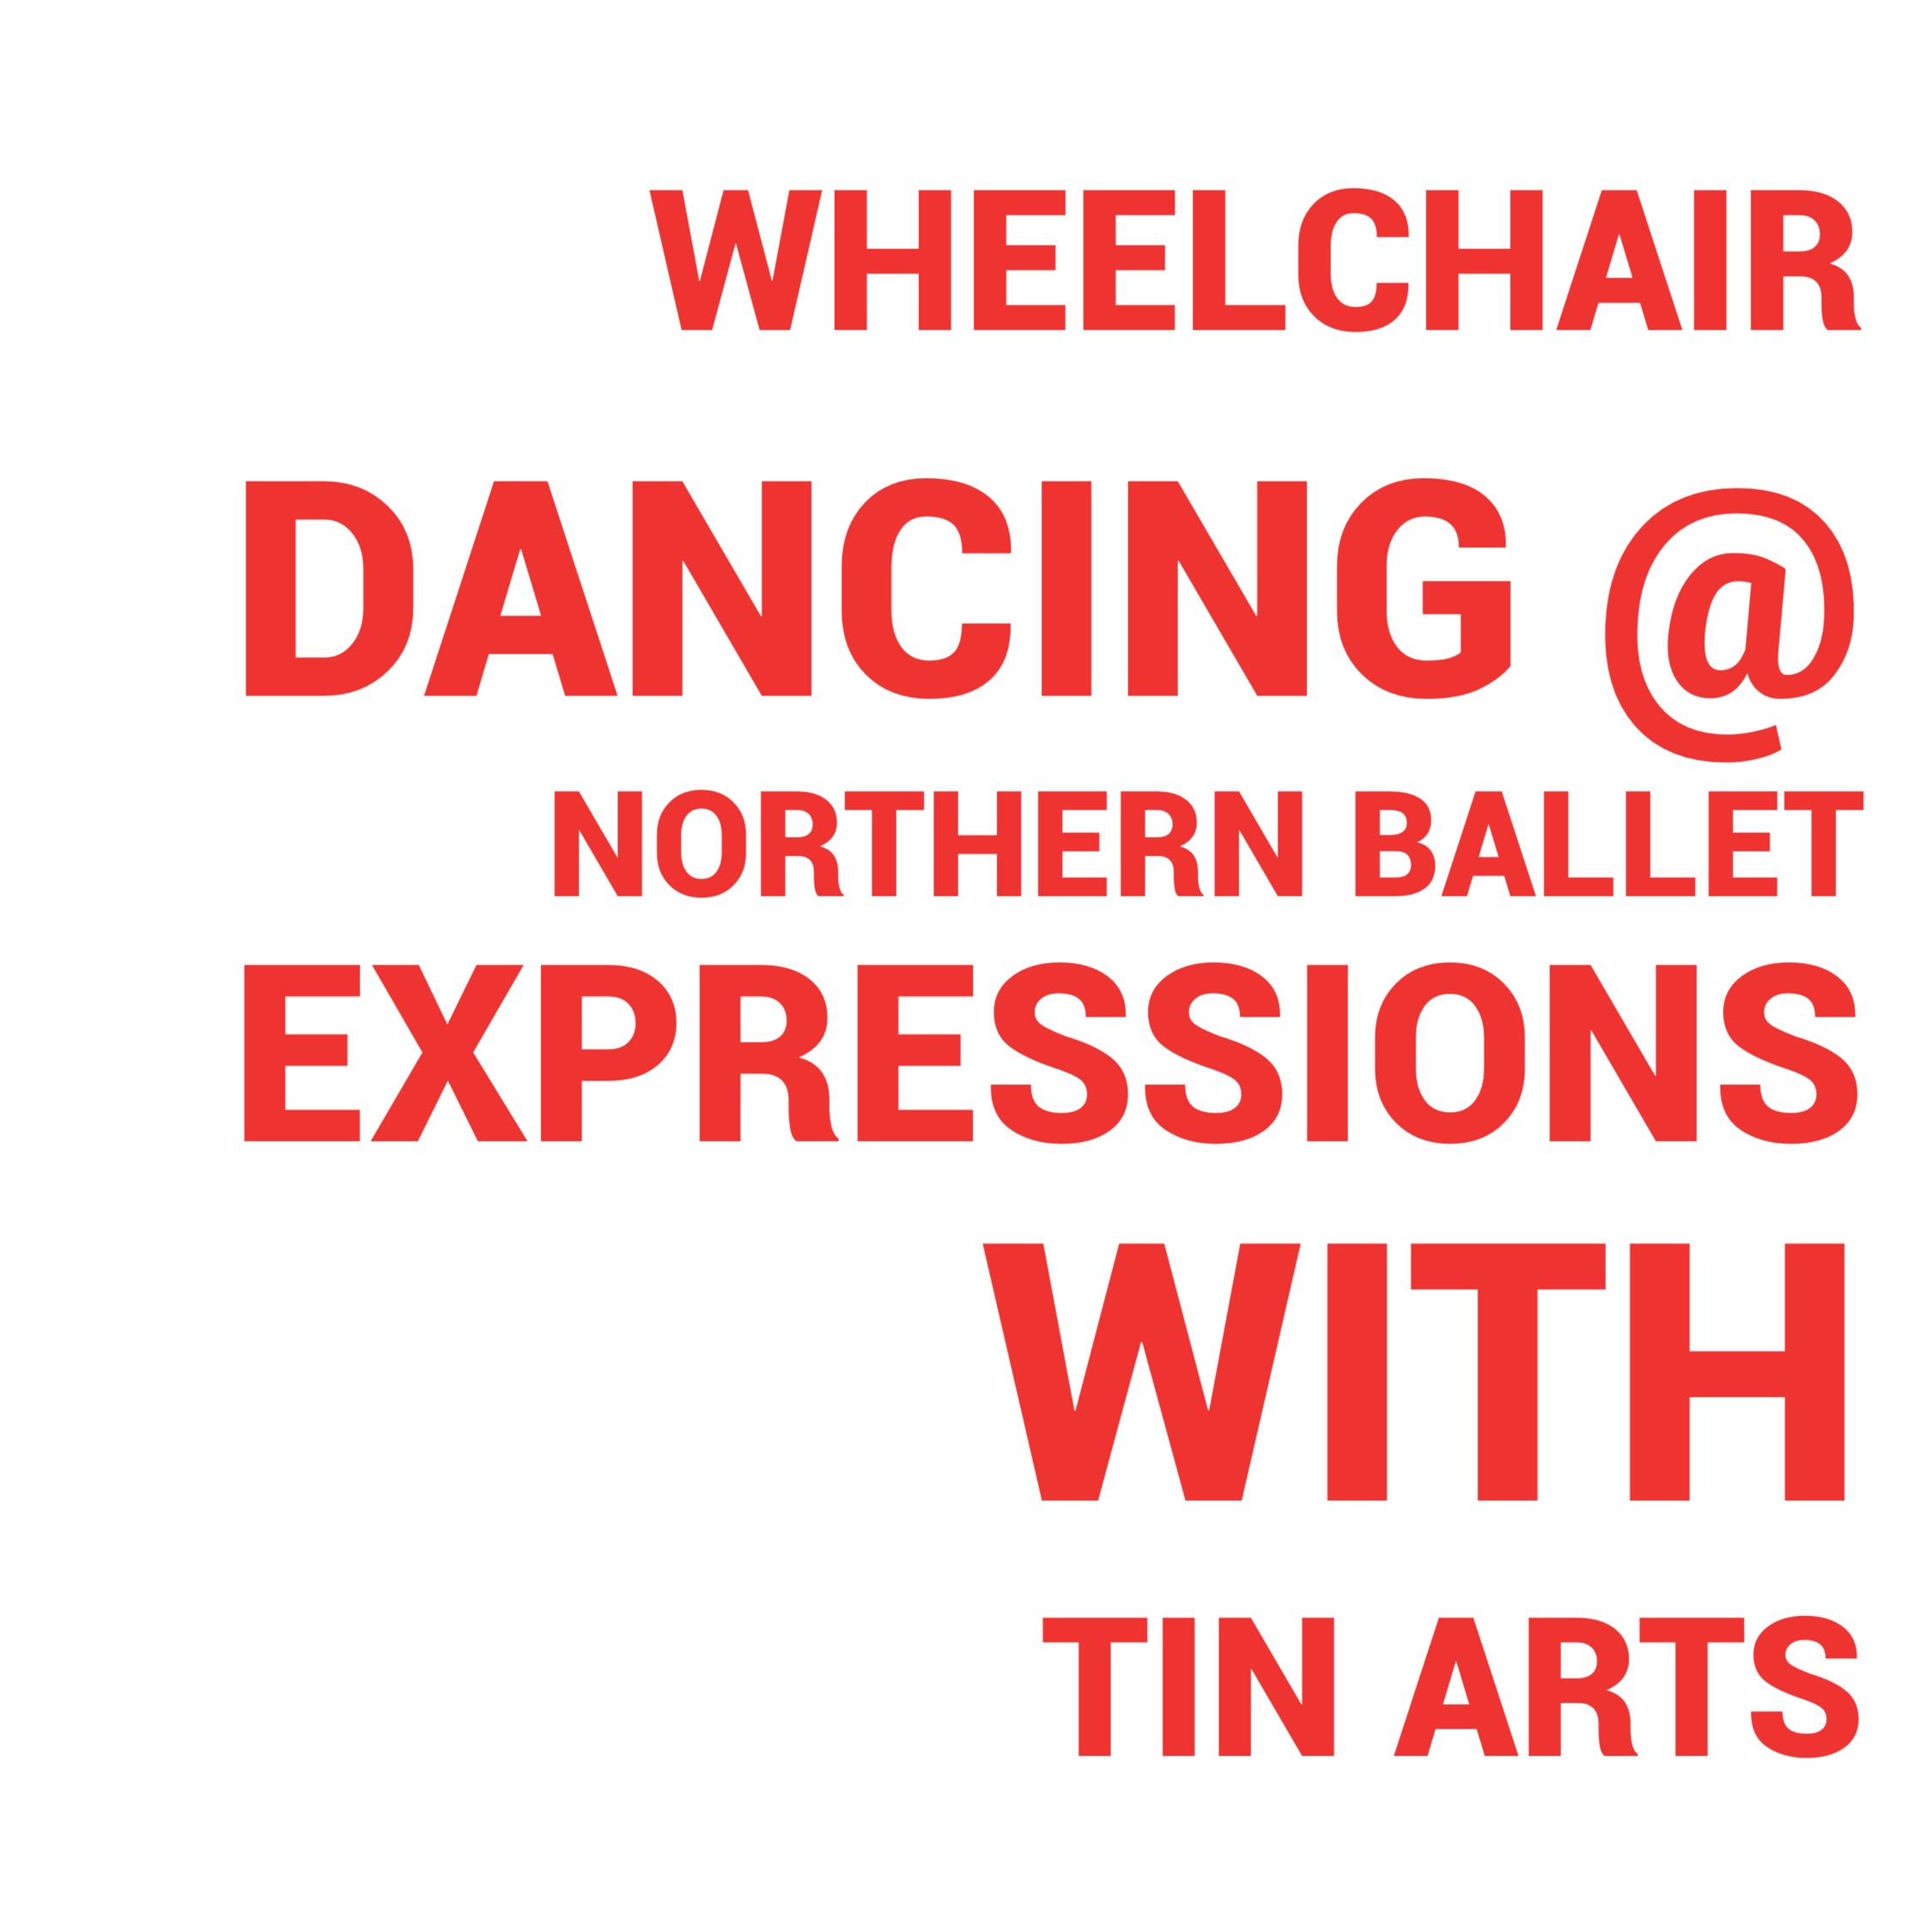 Wheelchair Dancing at Northern Ballet Expresssions With Tin Arts